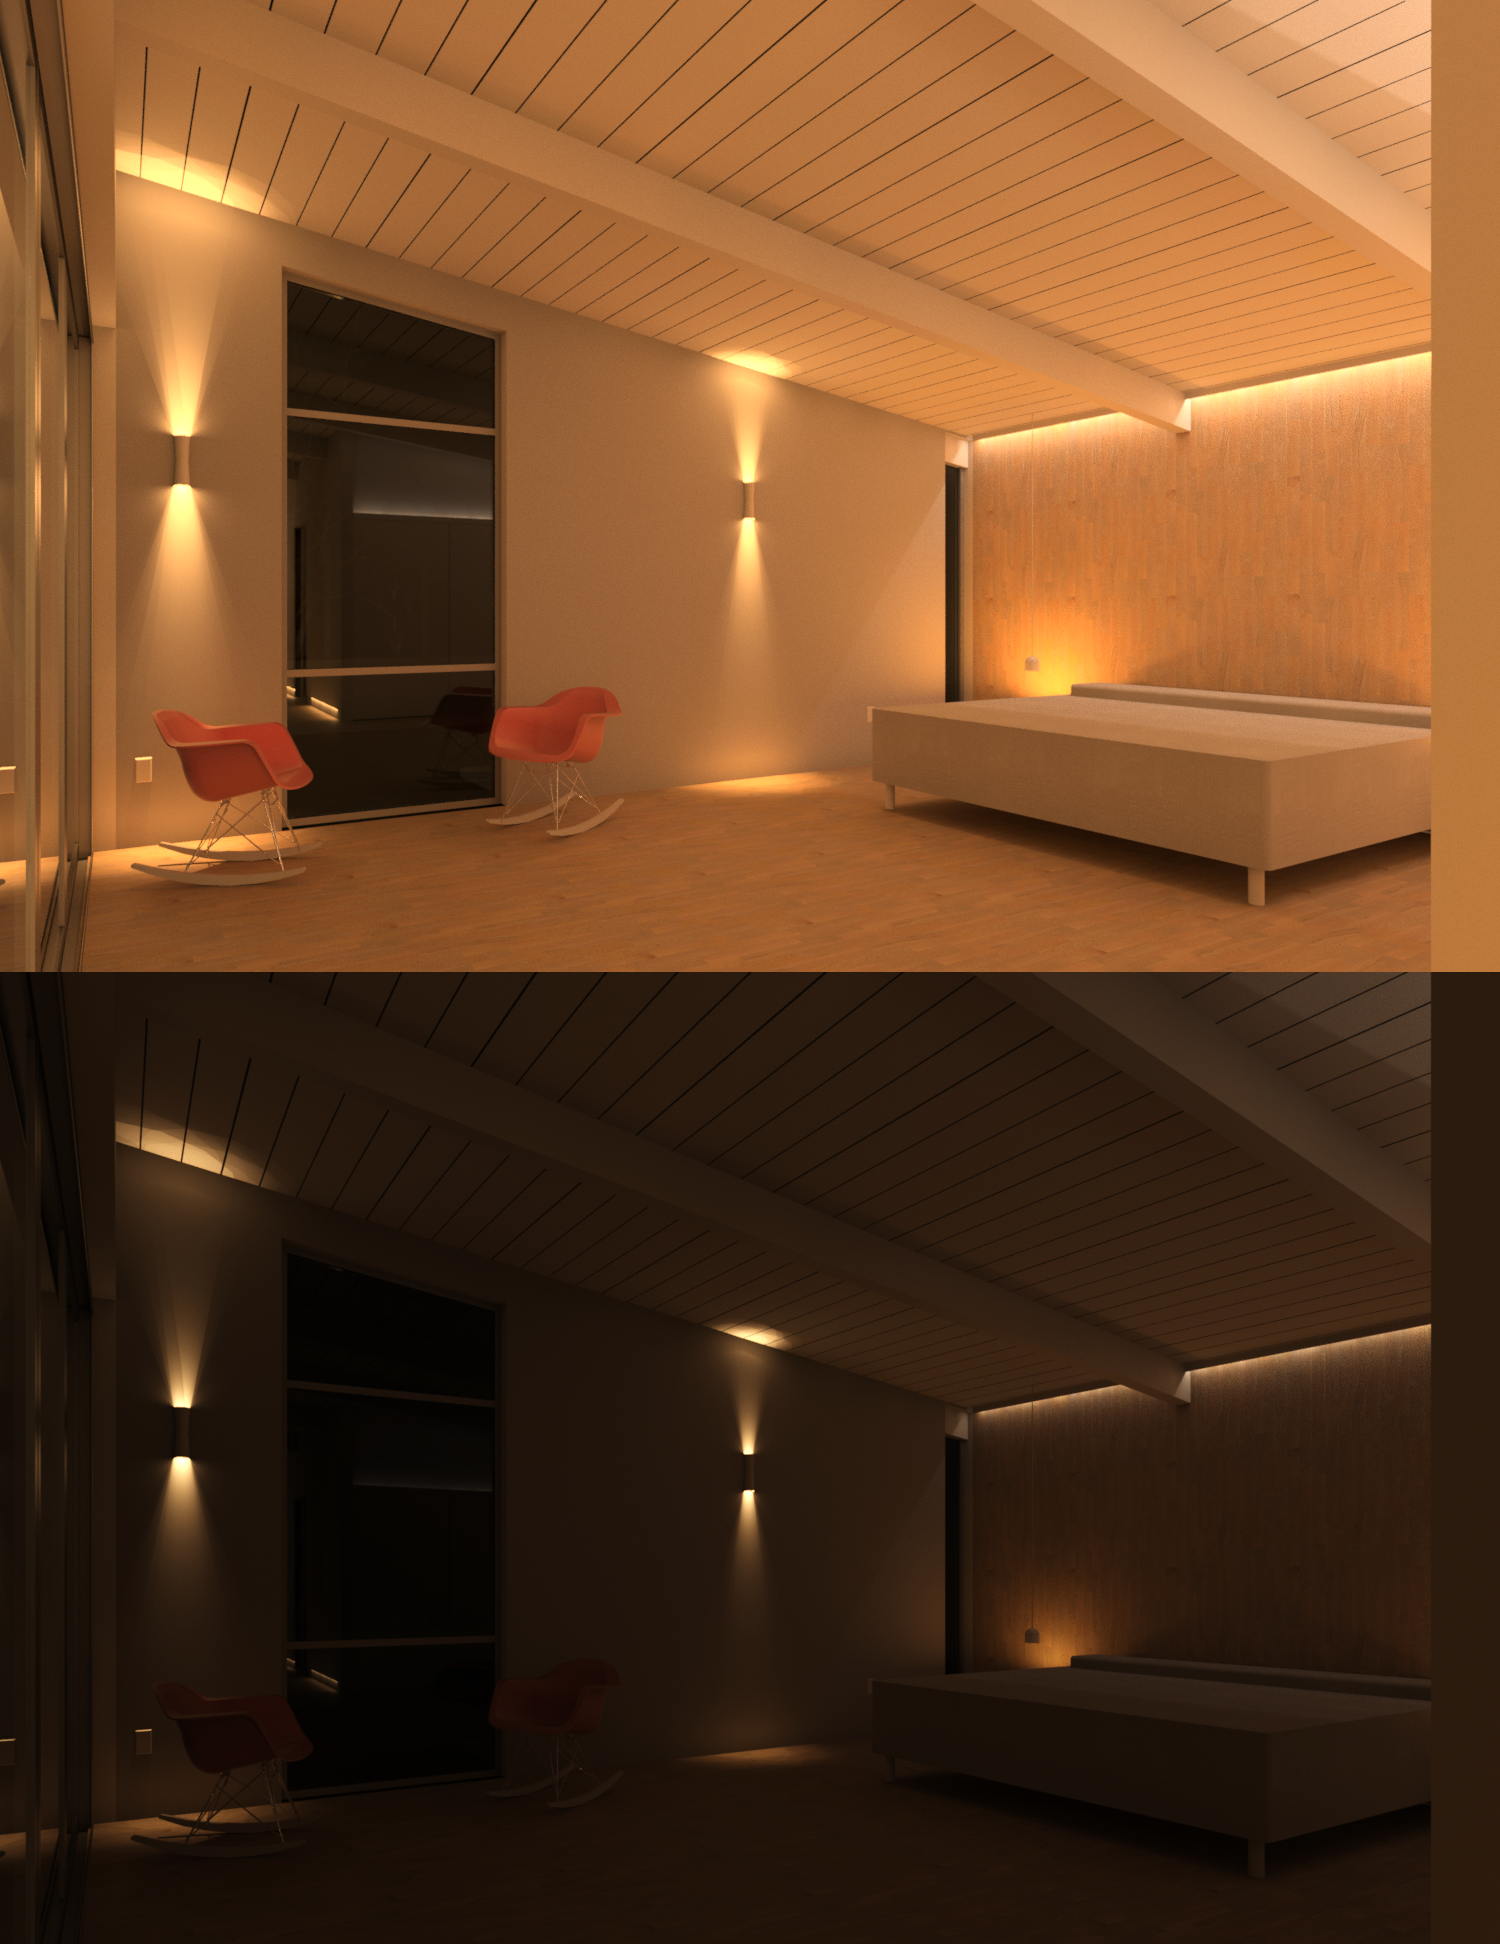 French-Meyers_3D_View_-_Master_Bedroom_from_corner_Lighting.png